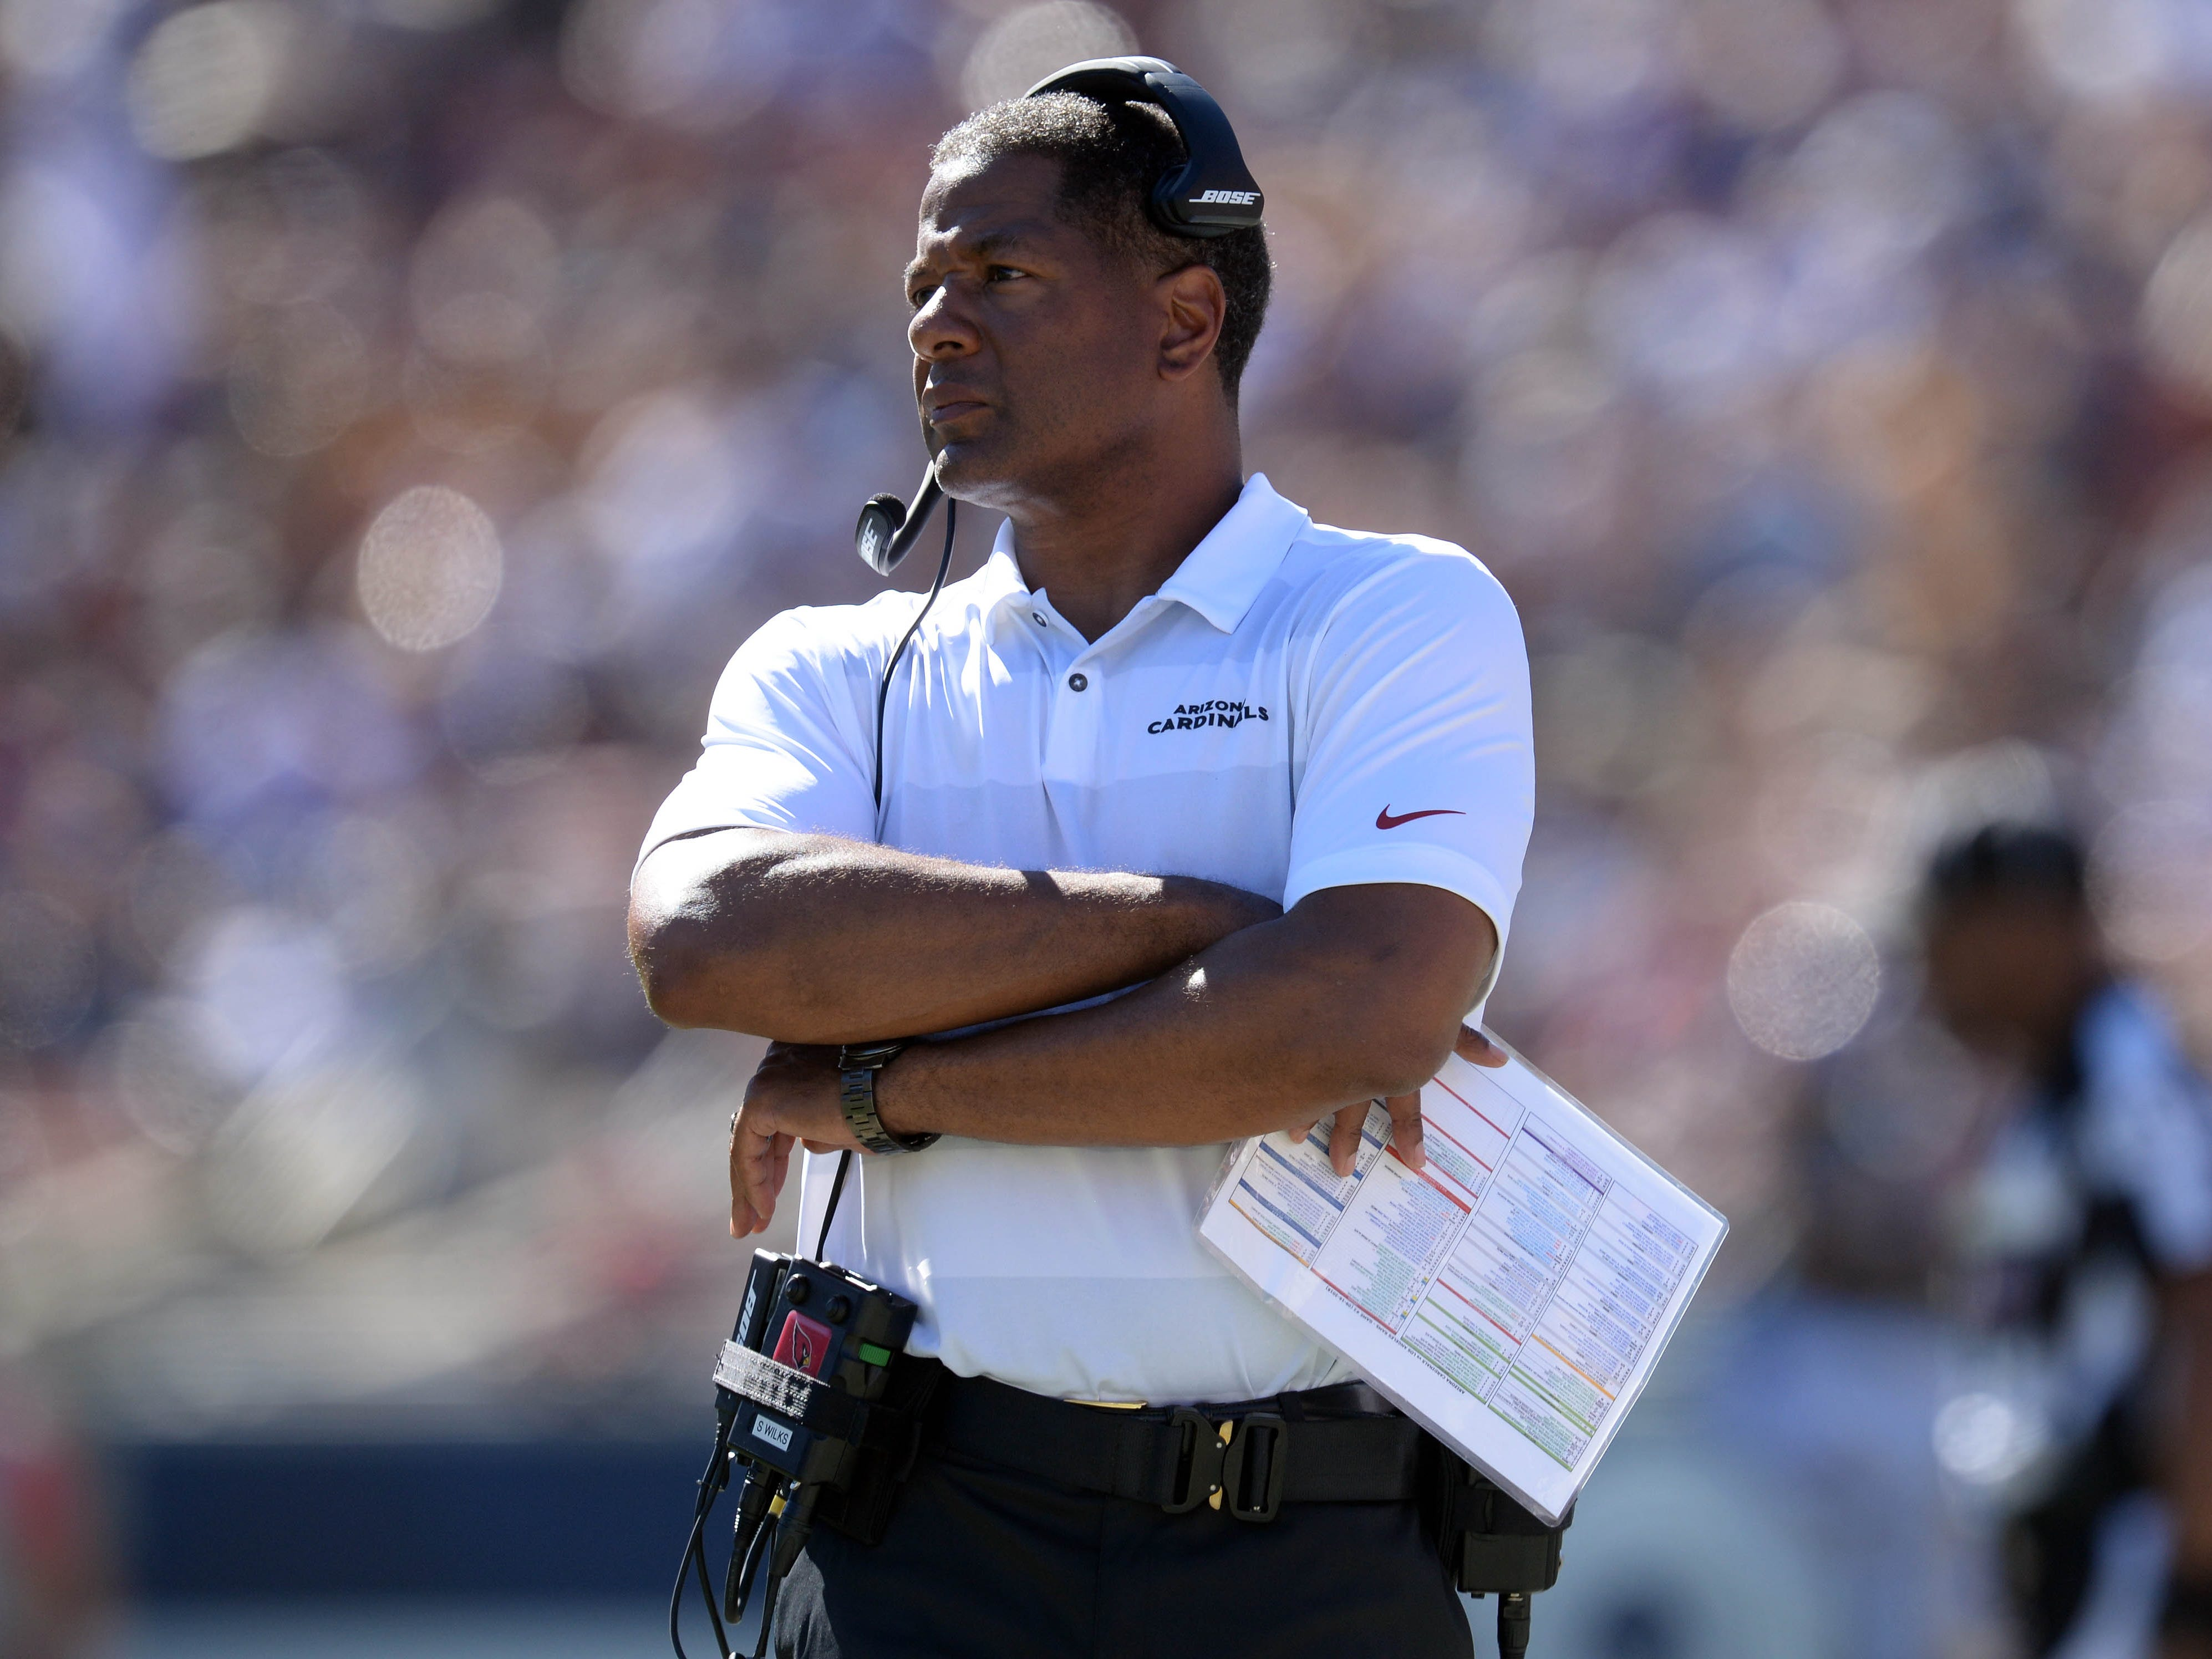 September 16, 2018; Los Angeles, CA, USA; Arizona Cardinals head coach Steve Wilks watches game action against the Los Angeles Rams during the second half at the Los Angeles Memorial Coliseum. Mandatory Credit: Gary A. Vasquez-USA TODAY Sports